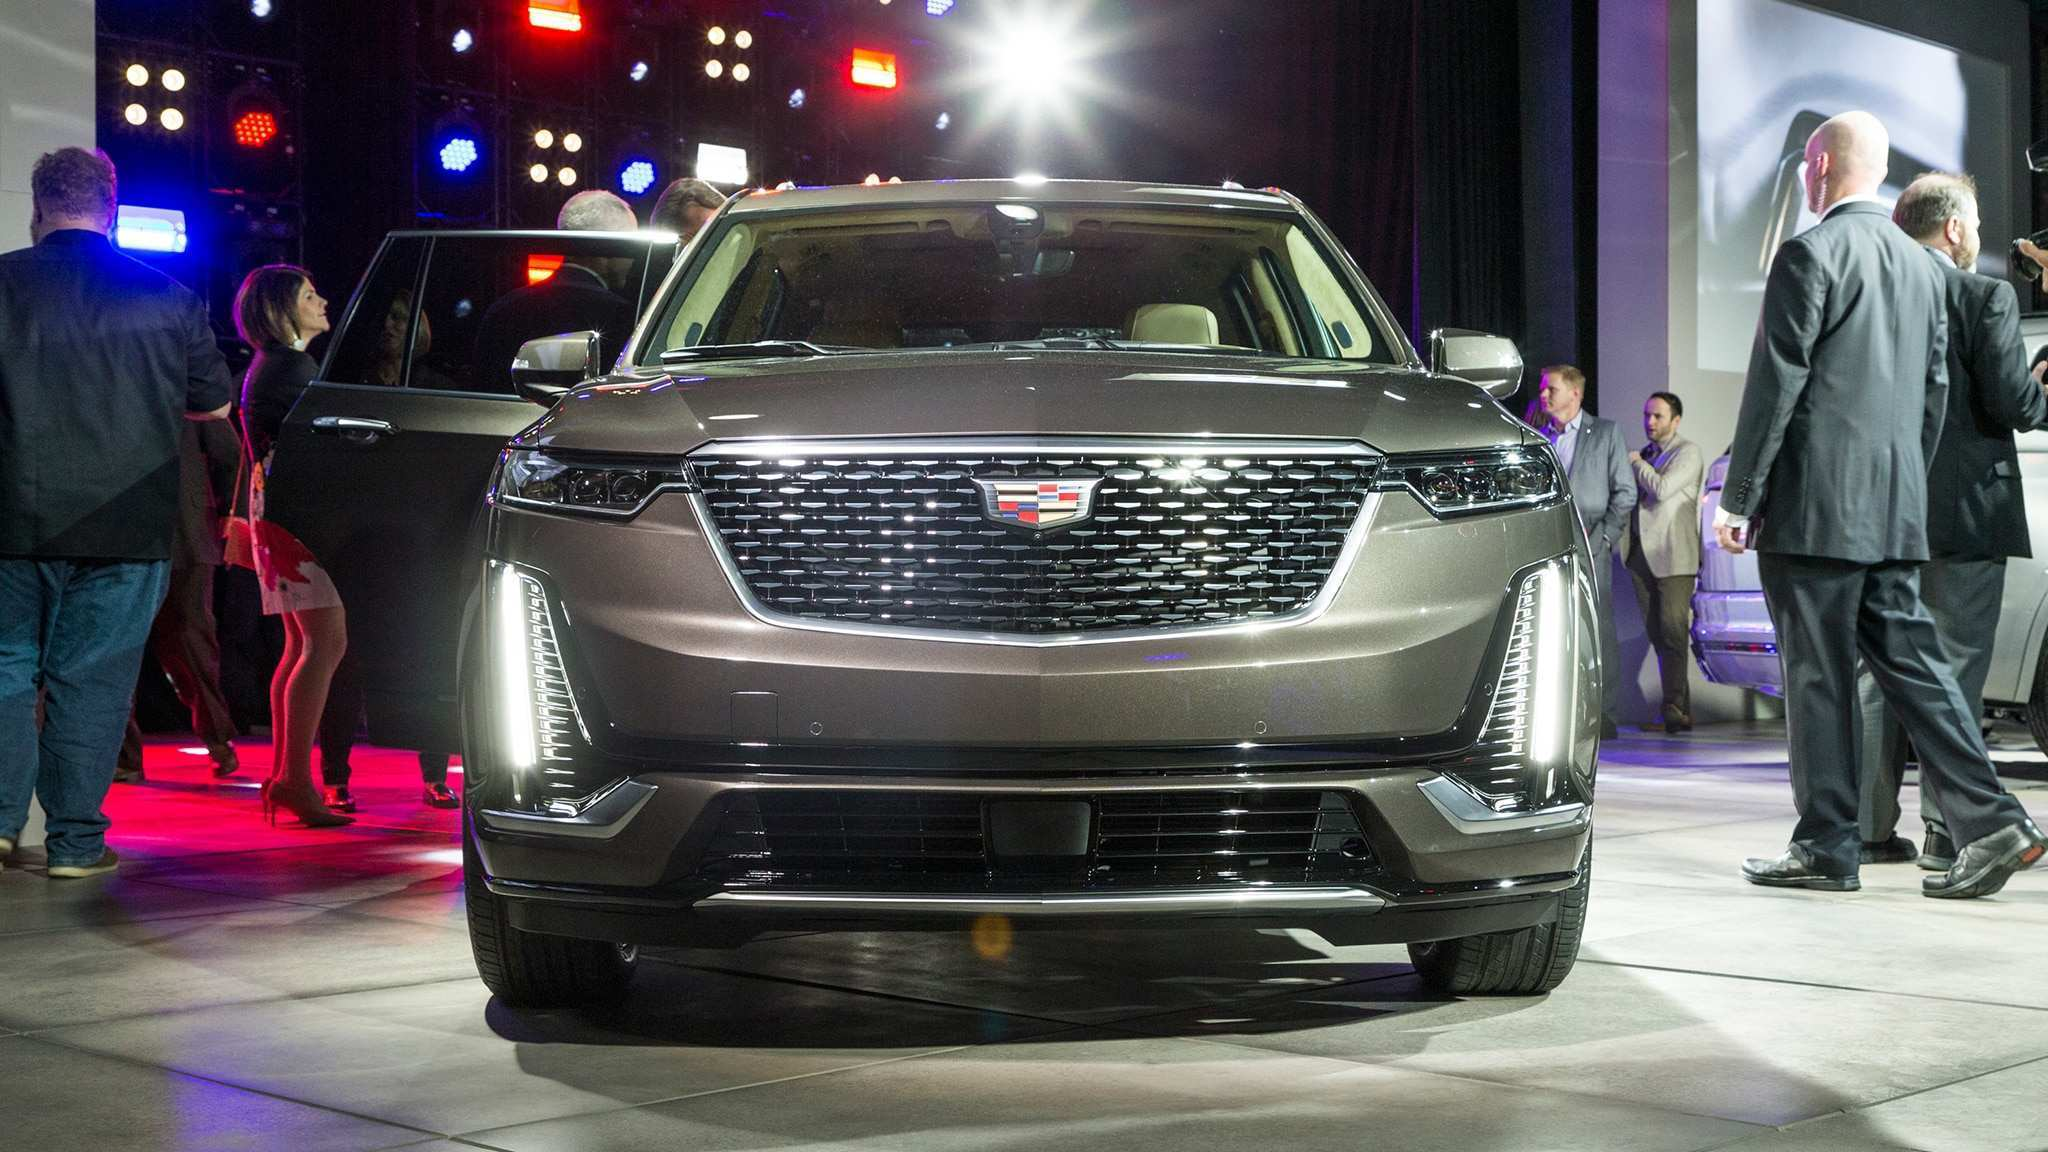 85 The Best 2020 Cadillac Escalade Luxury Suv Price And Release Date